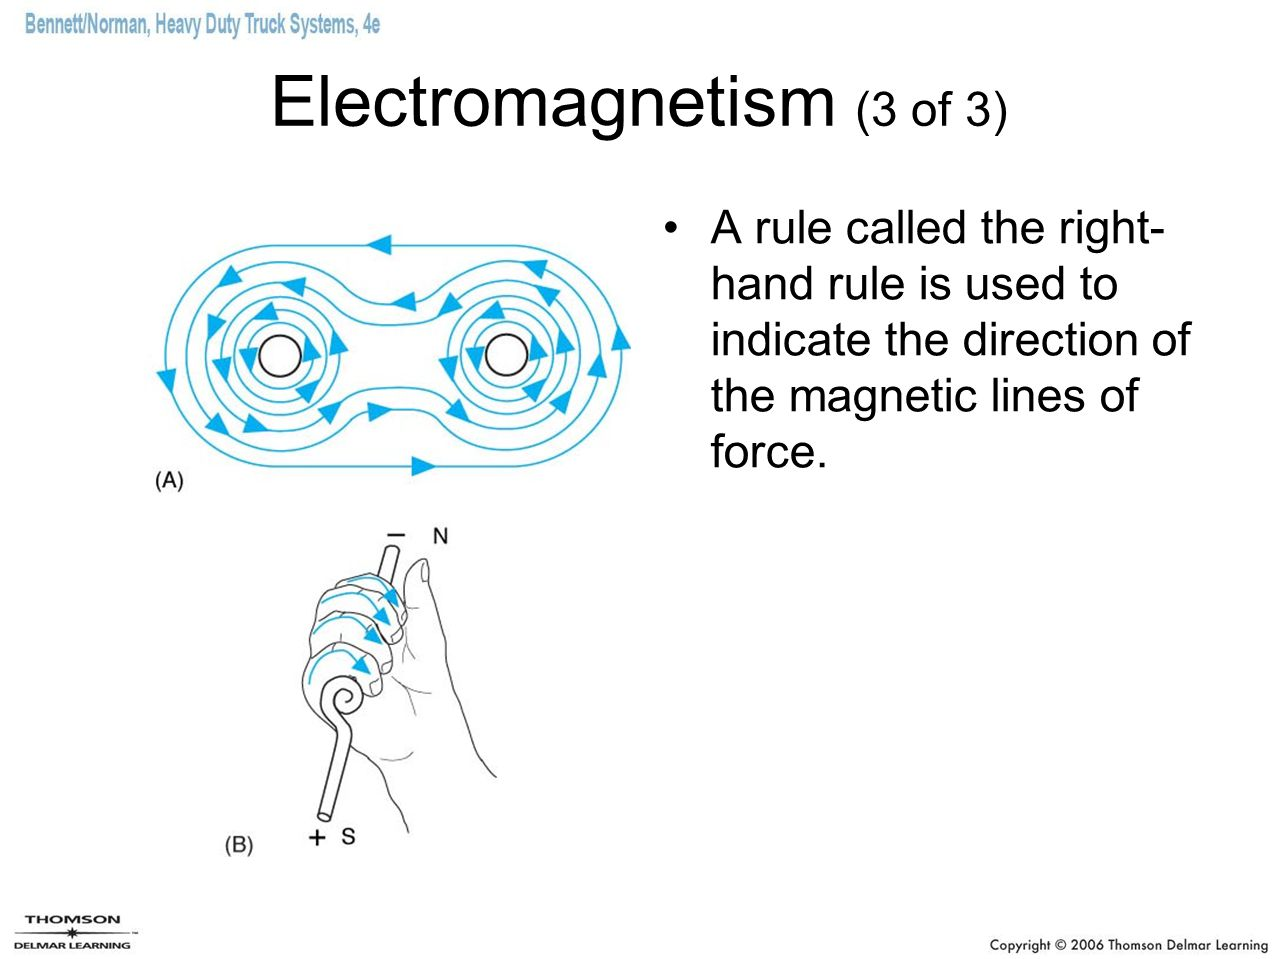 Electromagnetism (3 of 3)